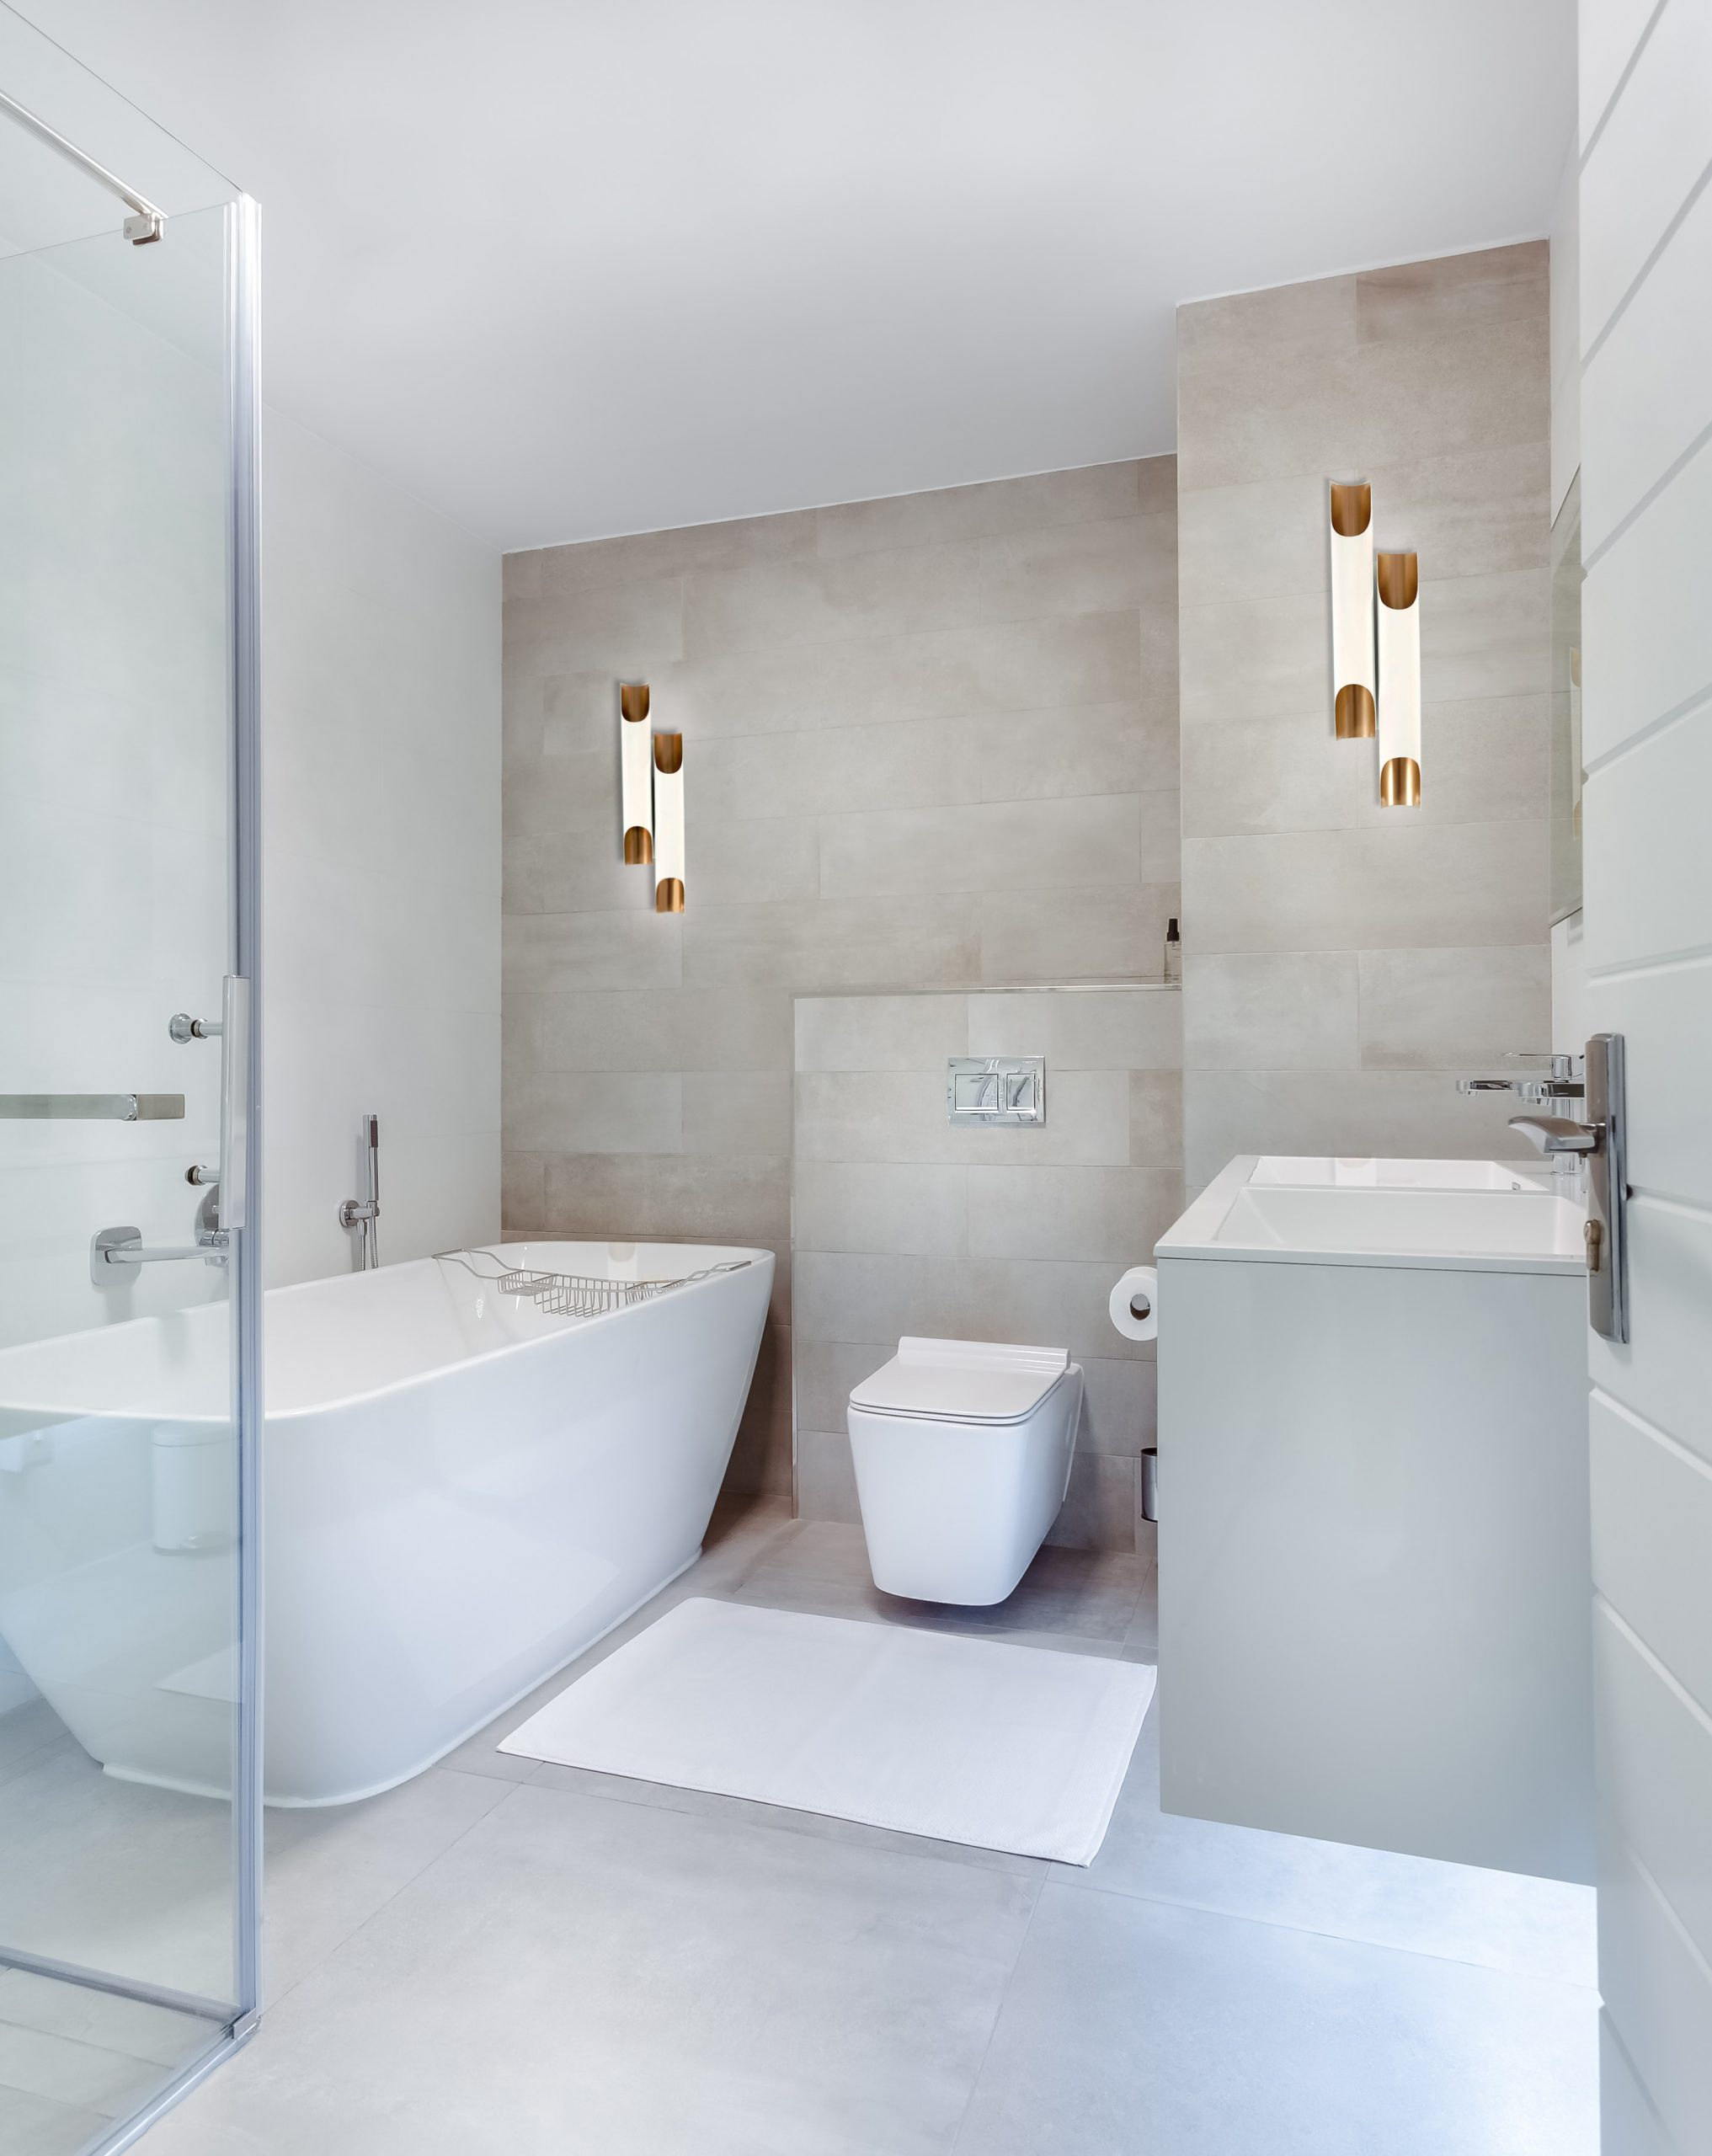 7 Functional Bathroom Lighting Pieces that Double as Décor! bathroom lighting piece 7 Functional Bathroom Lighting Pieces that Double as Décor! 1 1 scaled